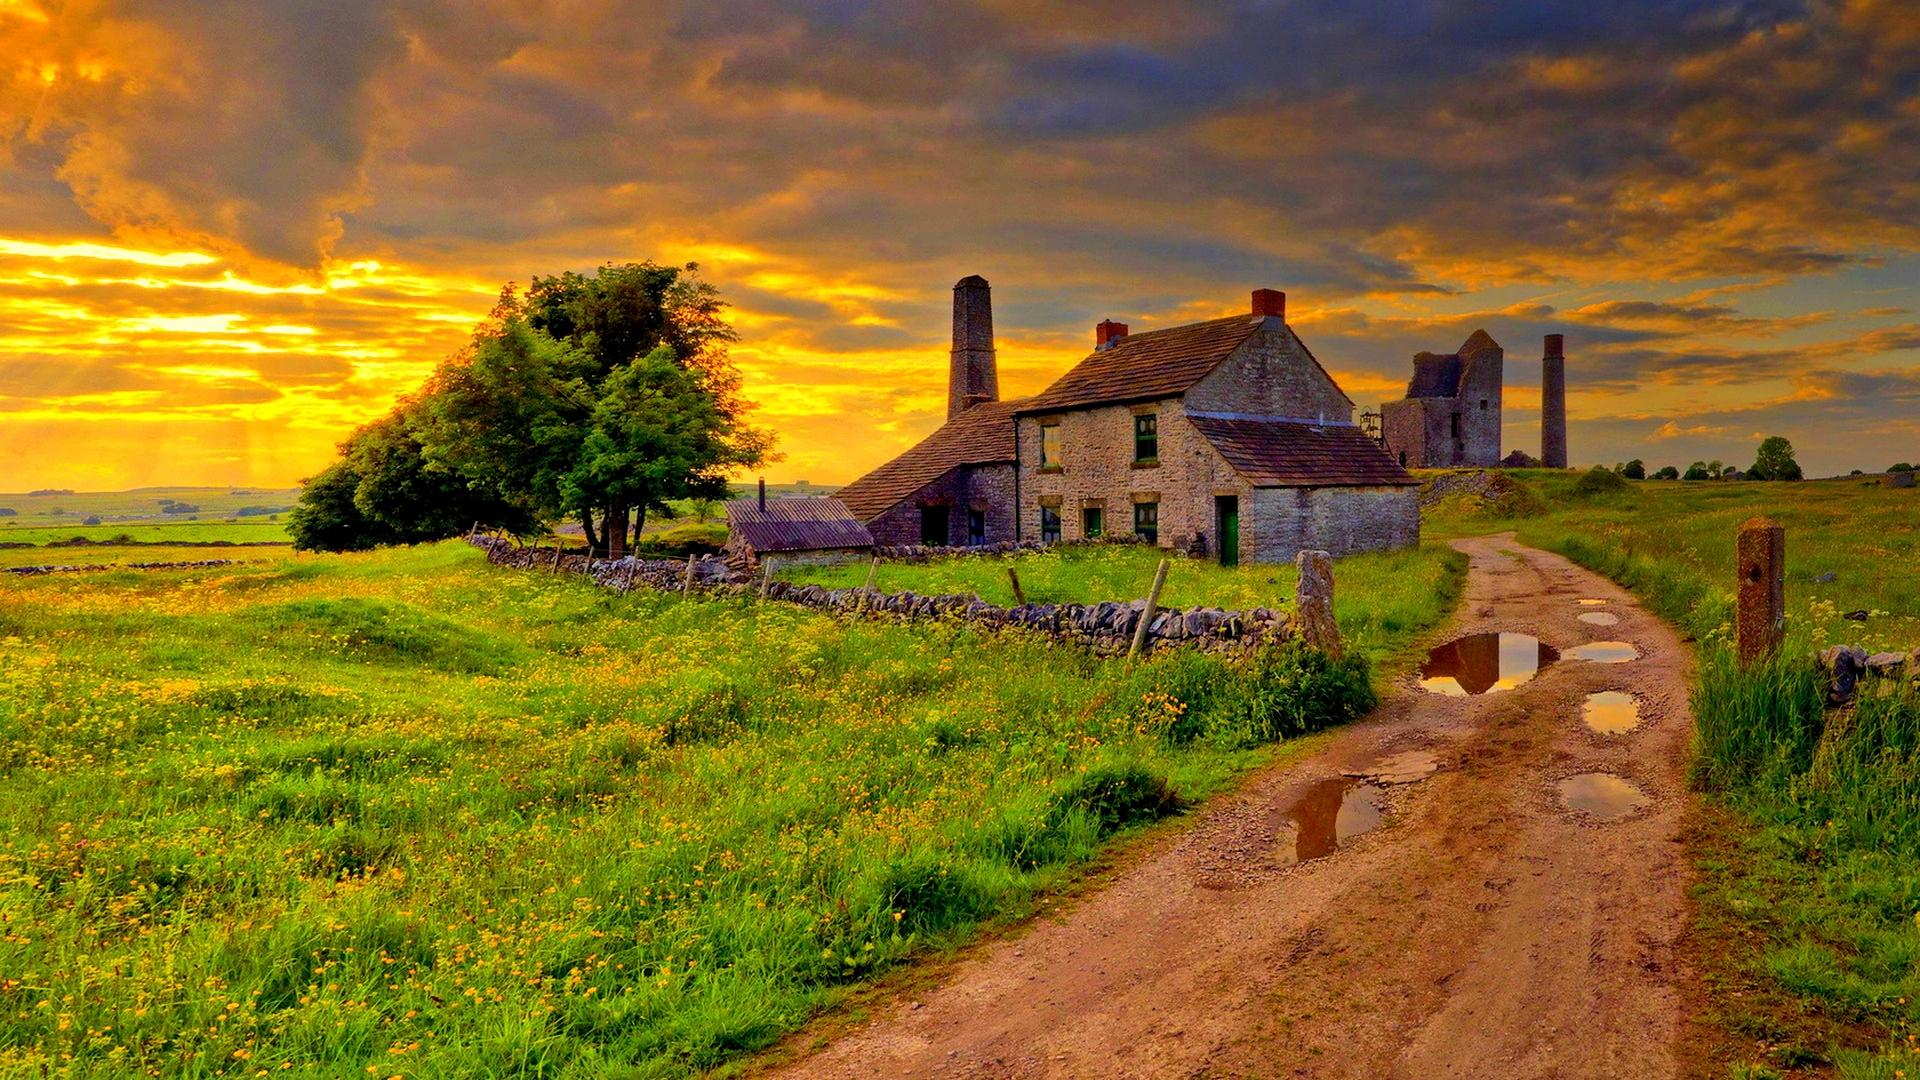 Spring on the Farm Wallpaper 1920x1080